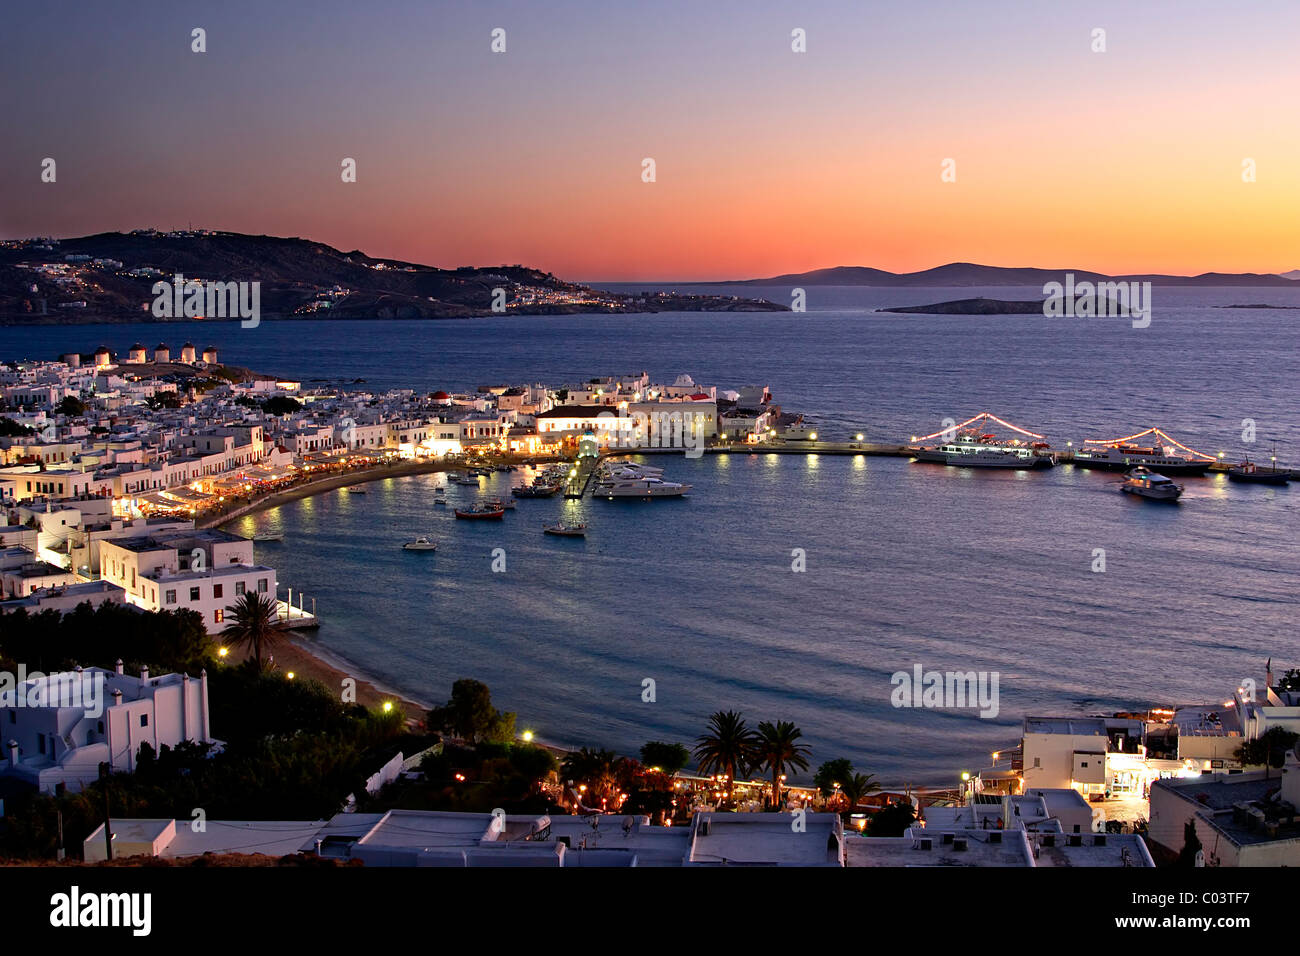 A panoramic view of the harbor of the Hora of Mykonos island, Greece. Stock Photo